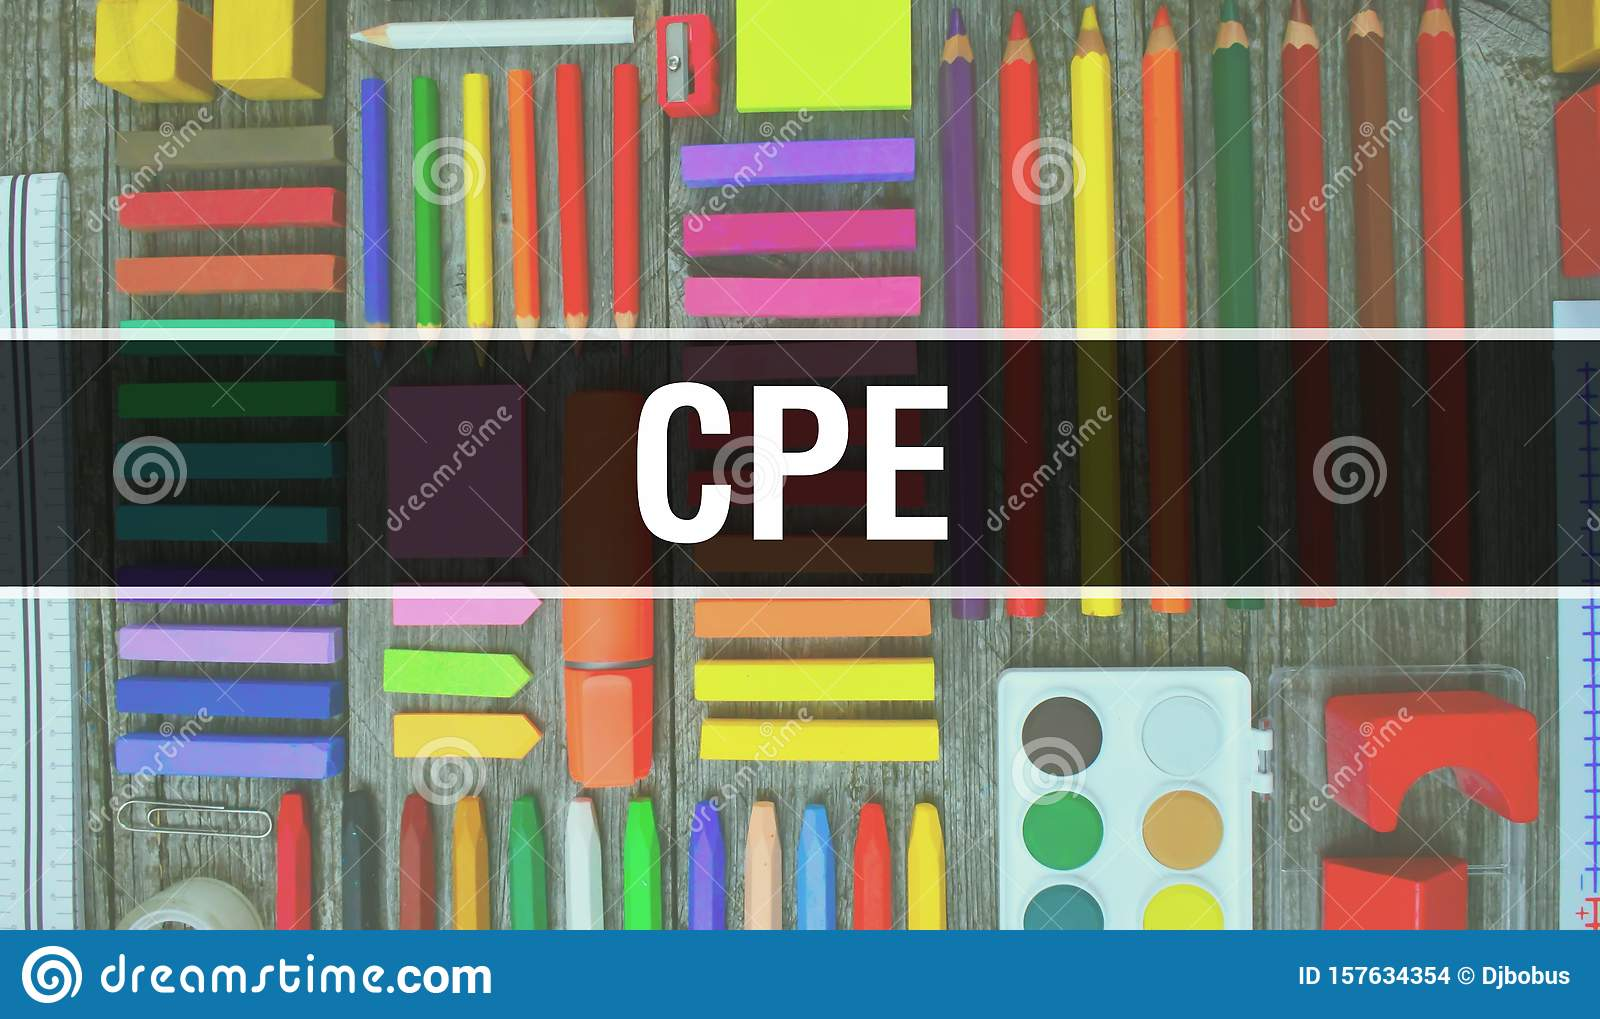 Cpe Text With Back To School Wallpaper Cpe And School Education Background Concept School Stationery And Cpe Text Banner With Stock Photo Image Of Design Banner 157634354